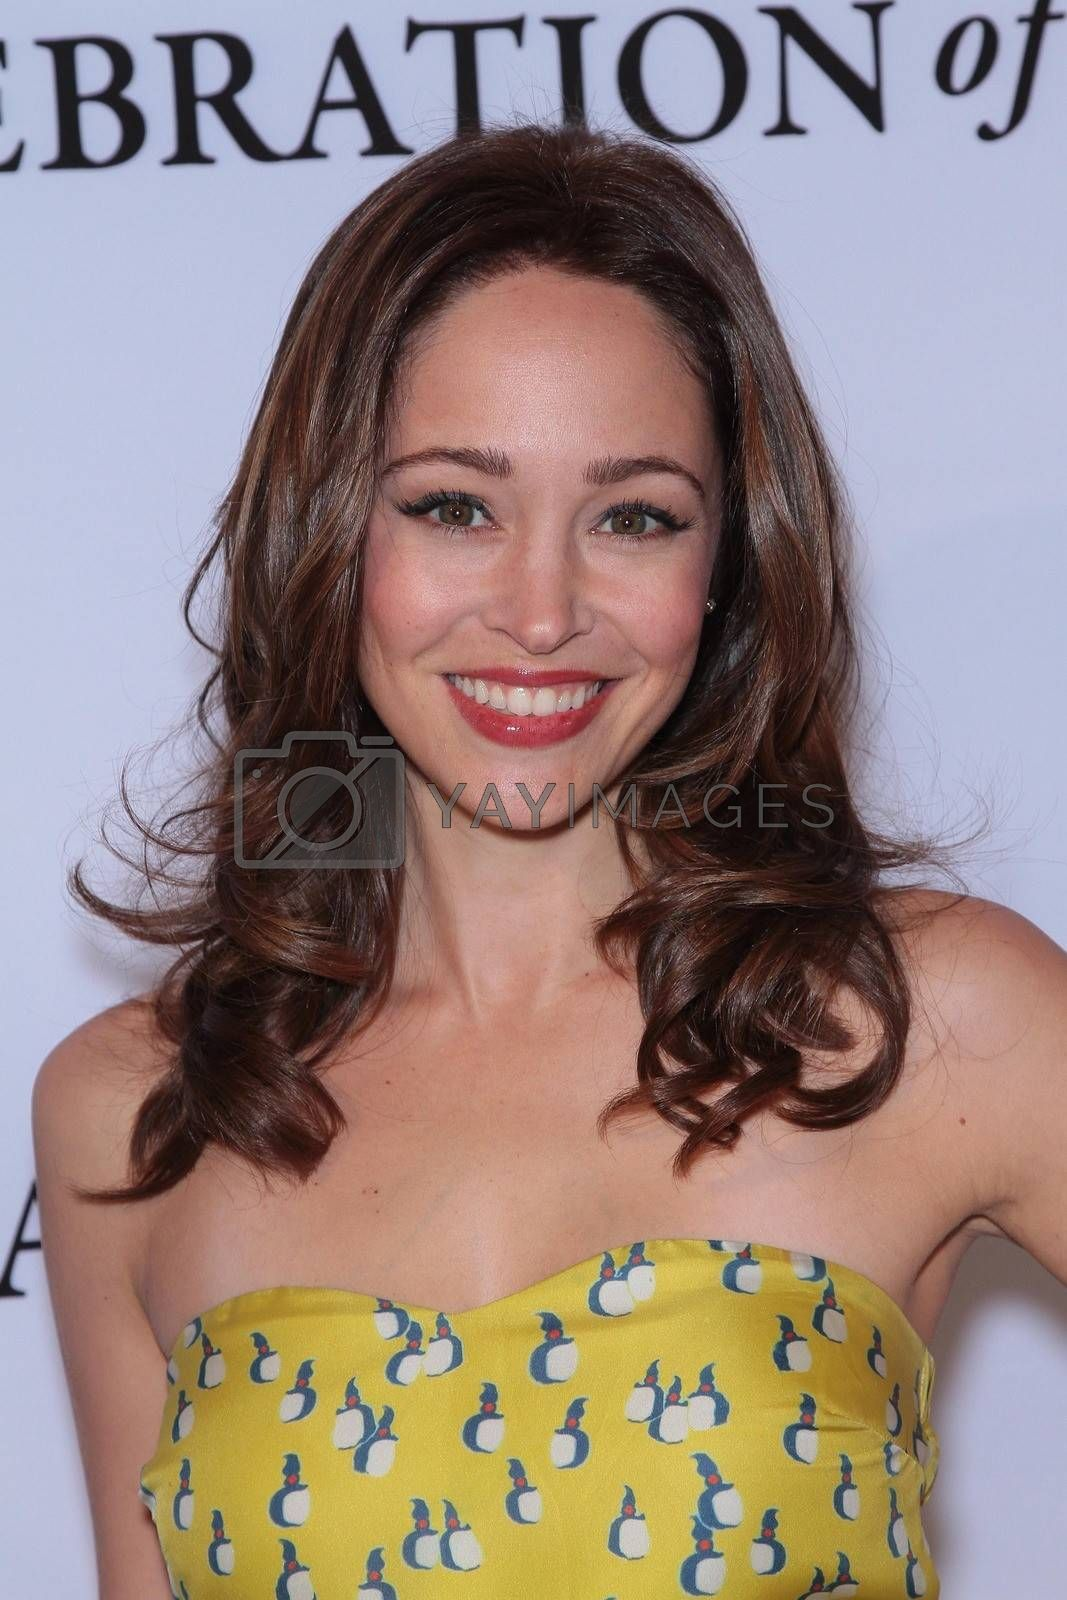 Autumn Reeser at the March Of Dimes' 6th Annual Celebration Of Babies Luncheon, Beverly Hills Hotel, Beverly Hills, CA 12-02-11/ImageCollect by ImageCollect